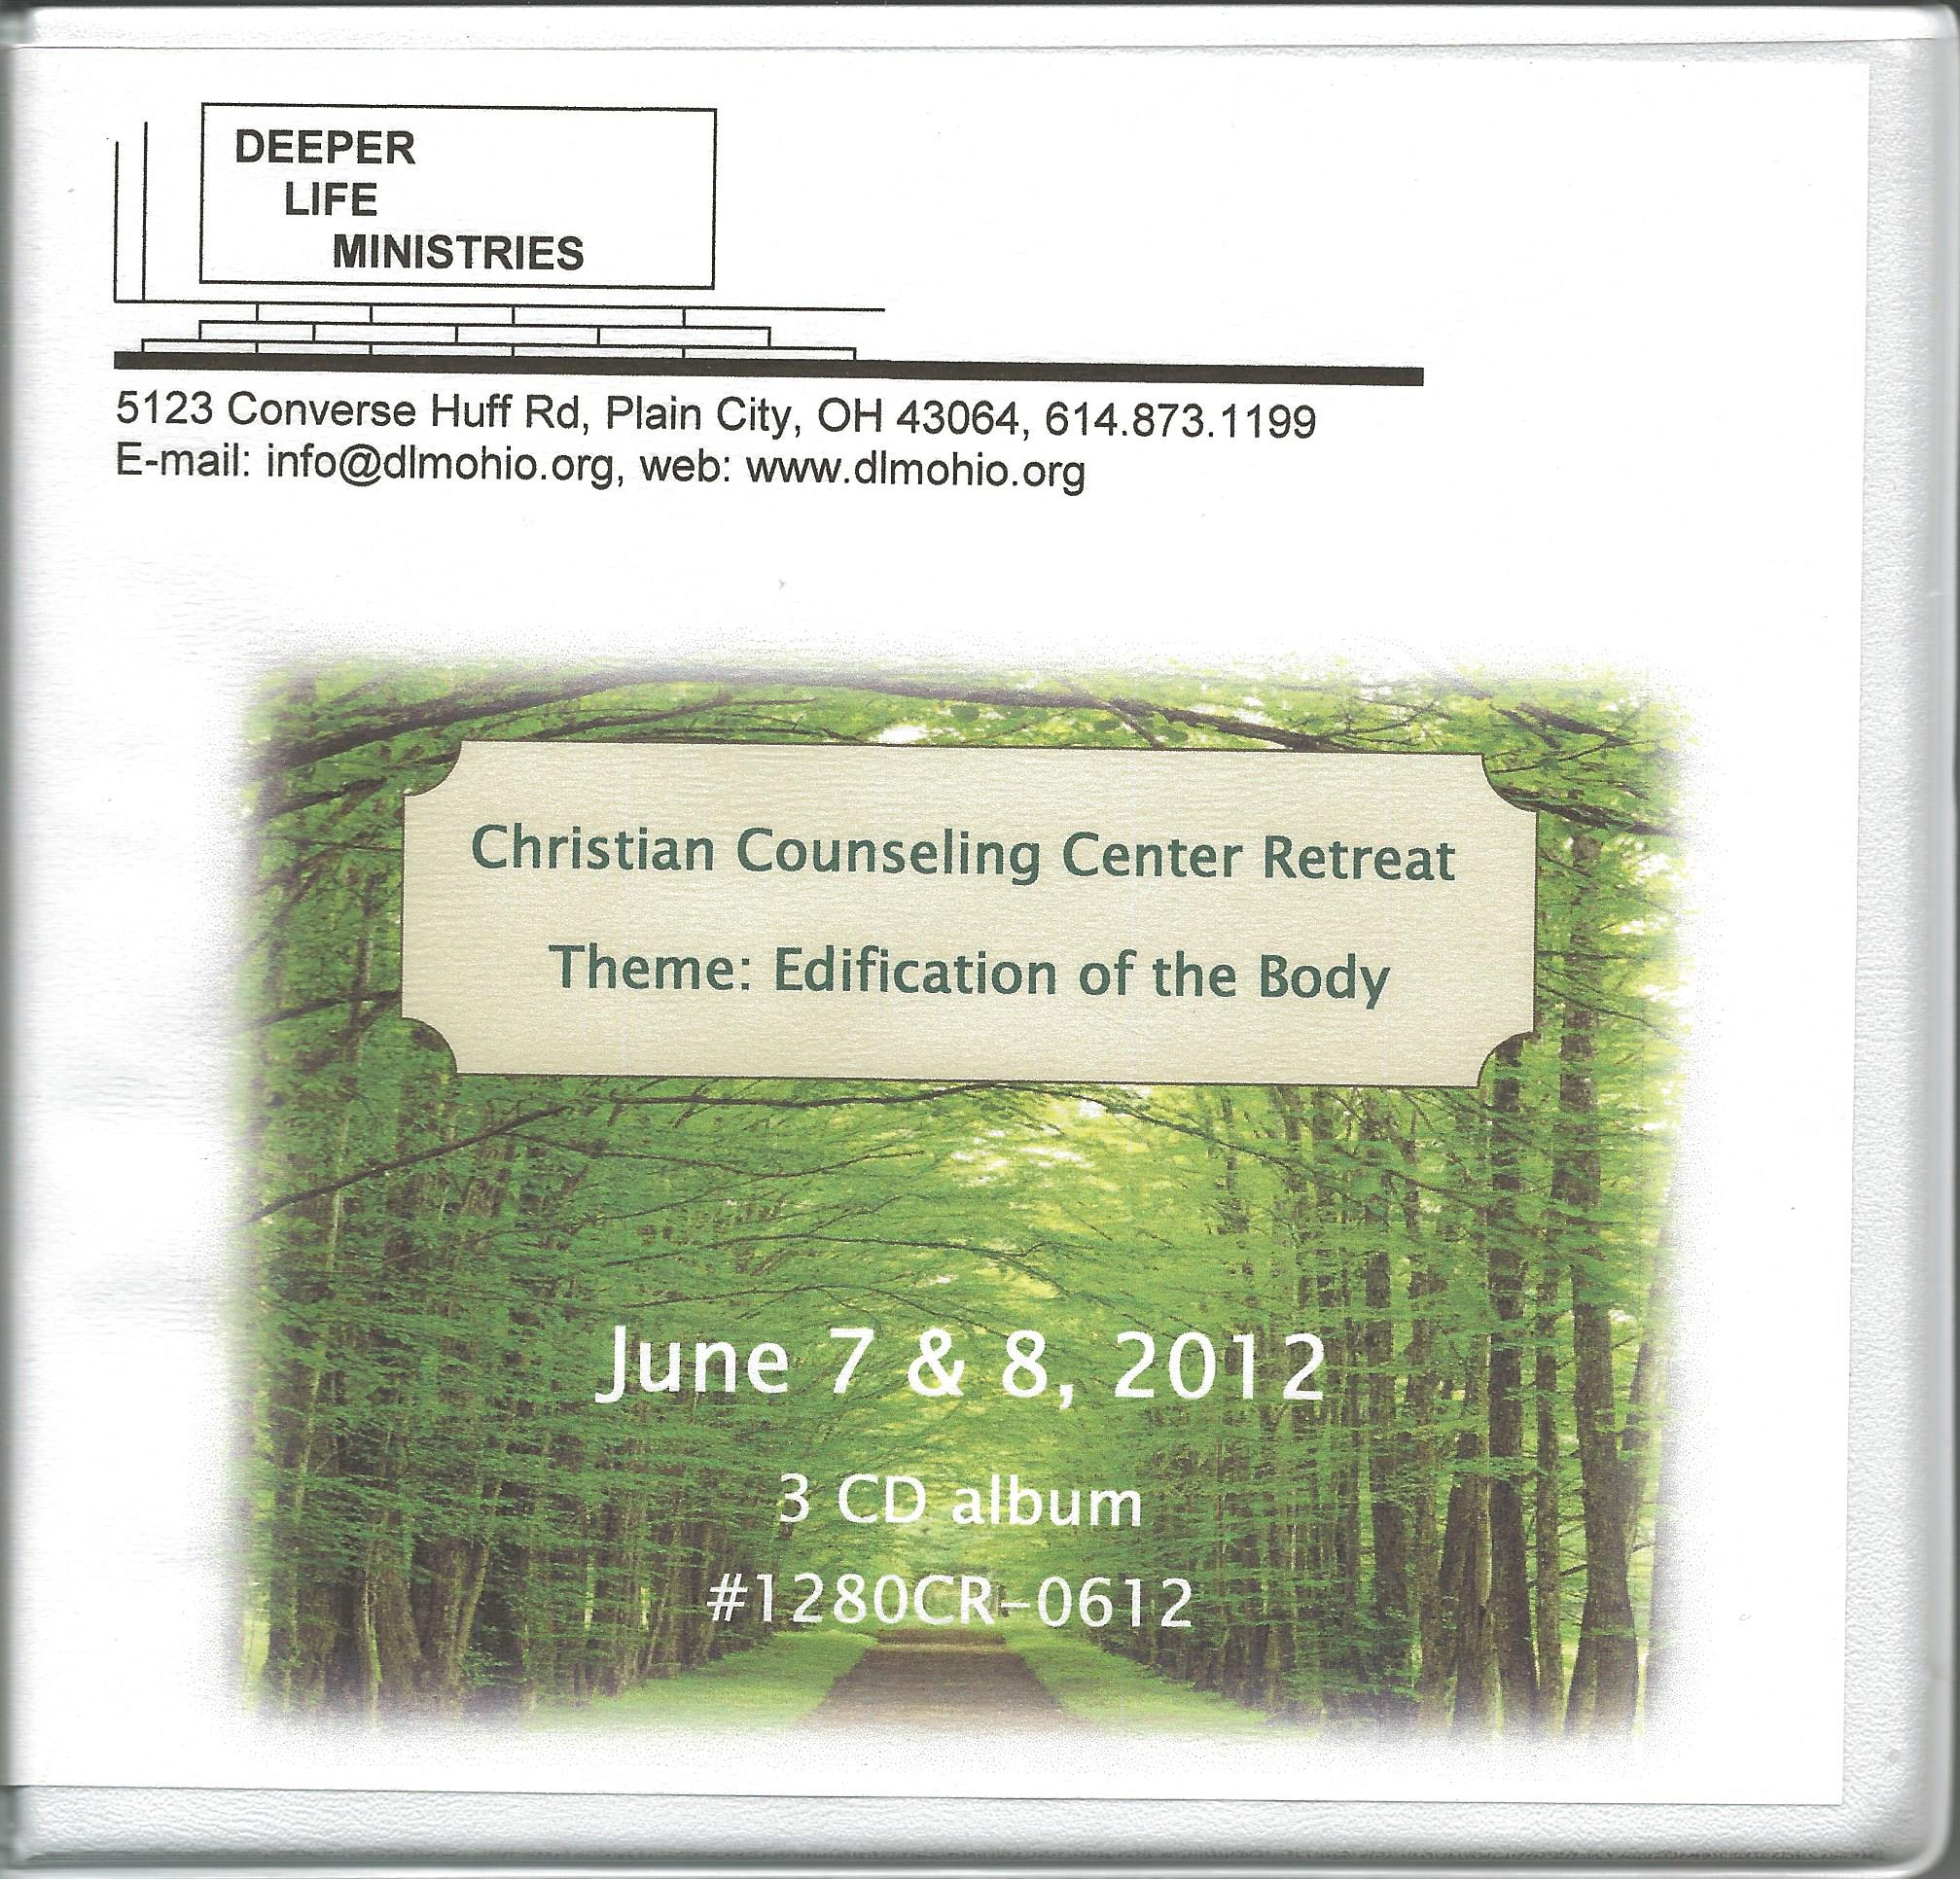 CHRISTIAN COUNSELING CENTER RETREAT 2012, CDs